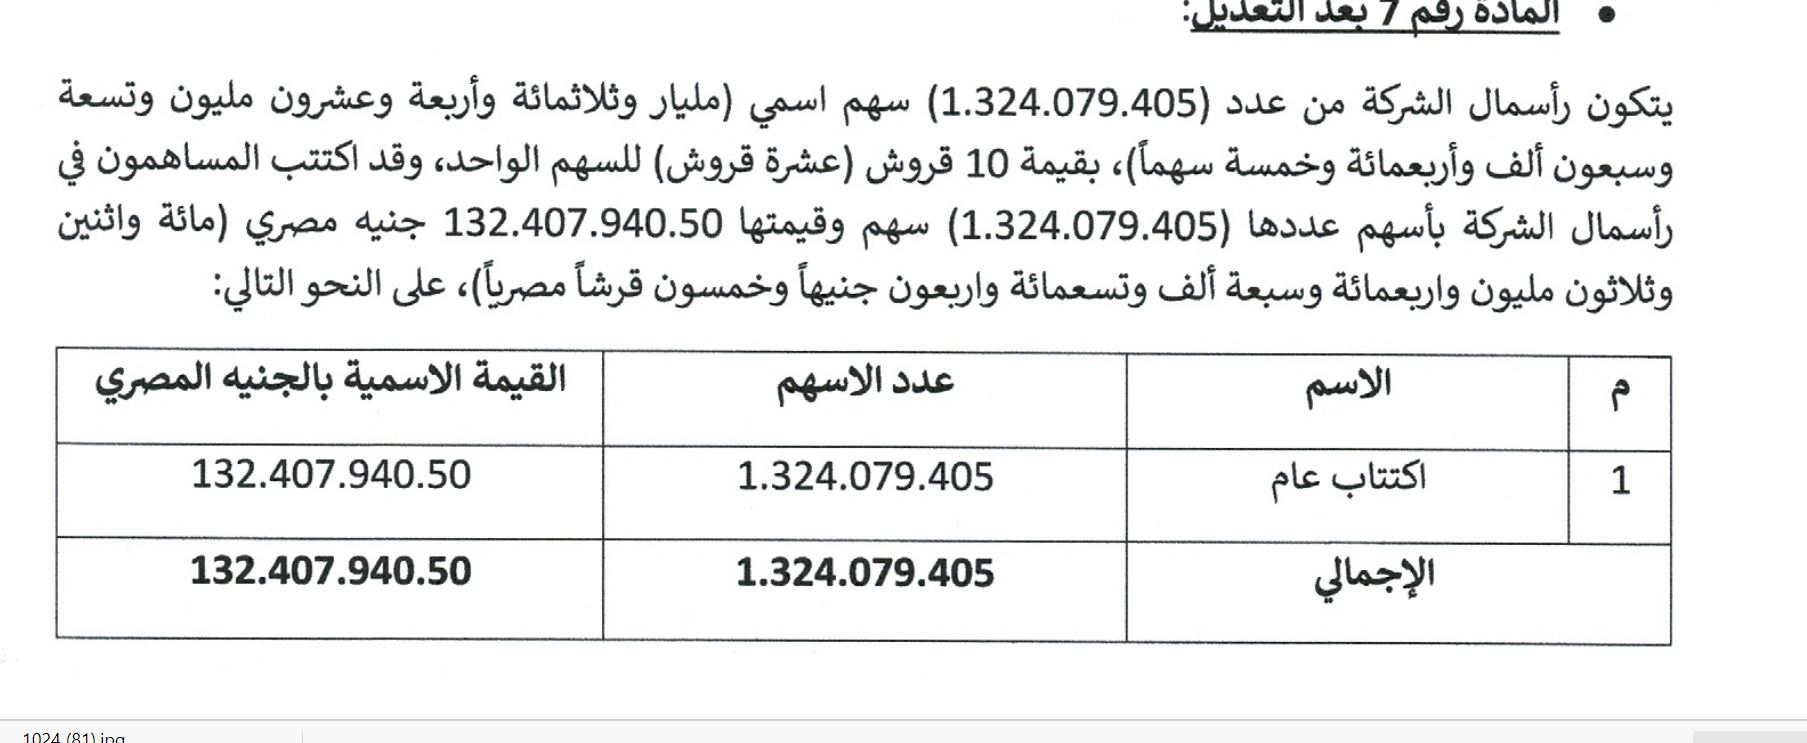 """21204626 AR 1610264704 Capture1 The general assembly of """"Arab Asset Management"""" approved the division of its share value into 10 piasters"""